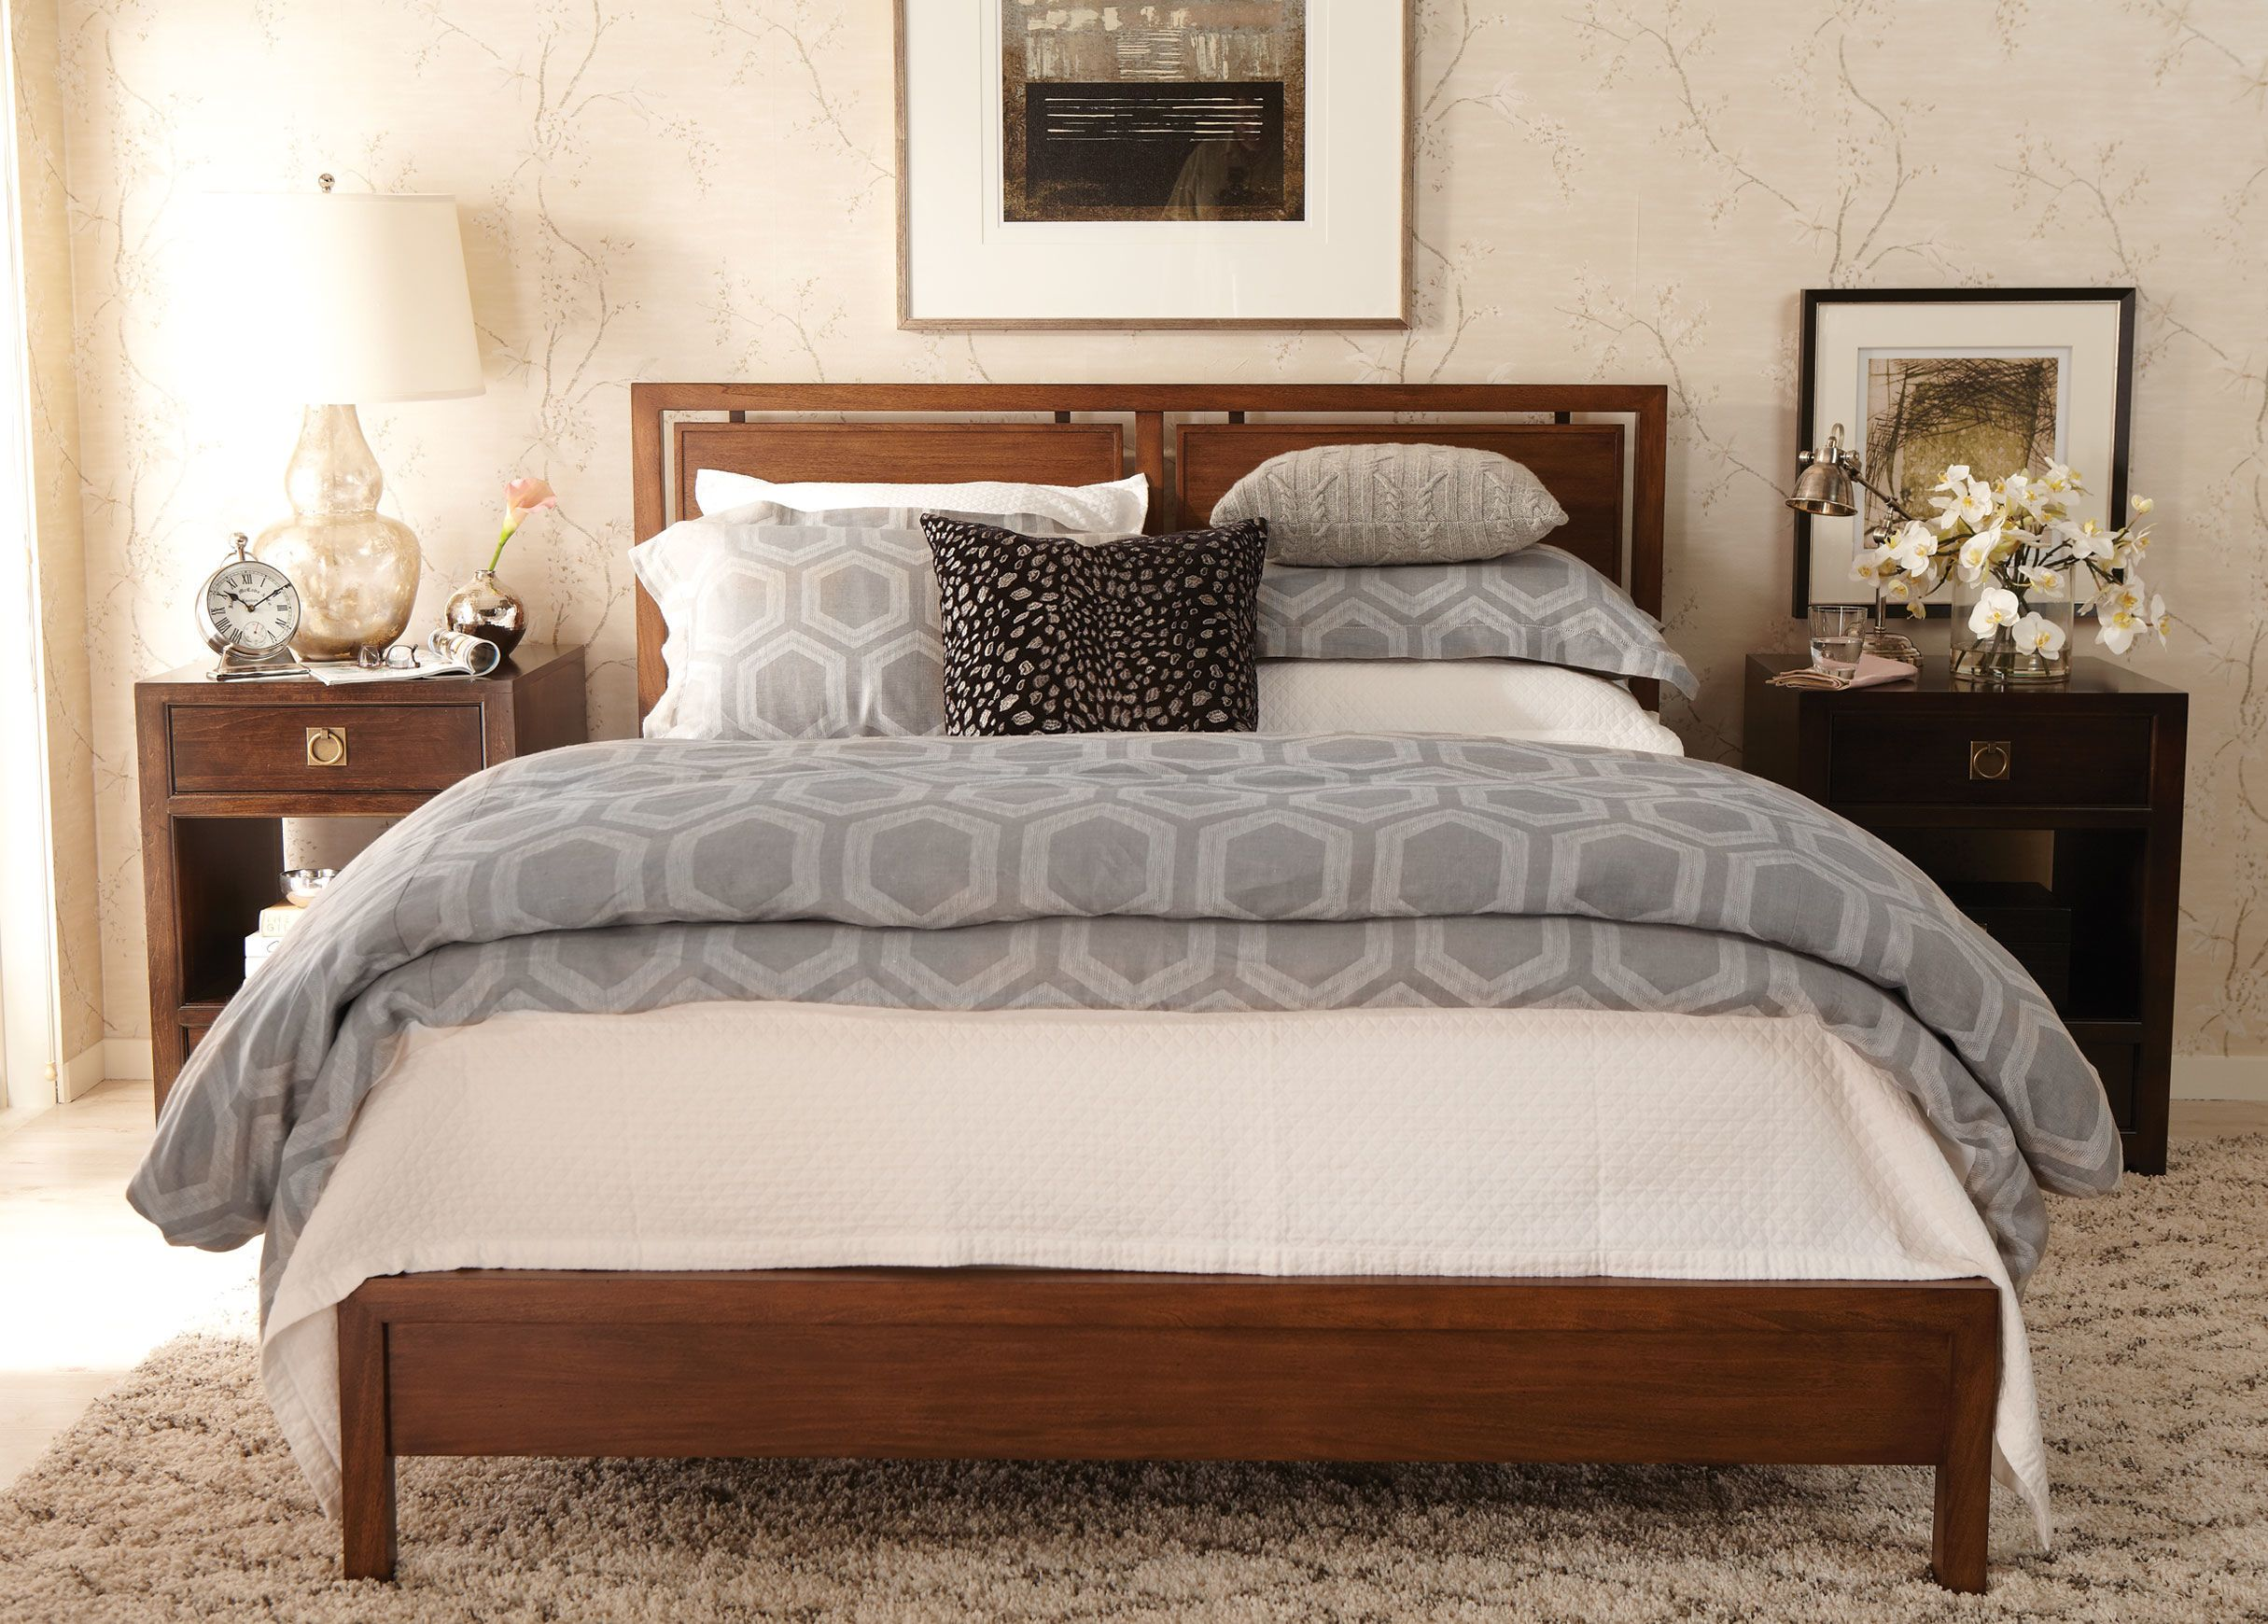 Taran Bed Ethan Allen our first home Pinterest Linen duvet